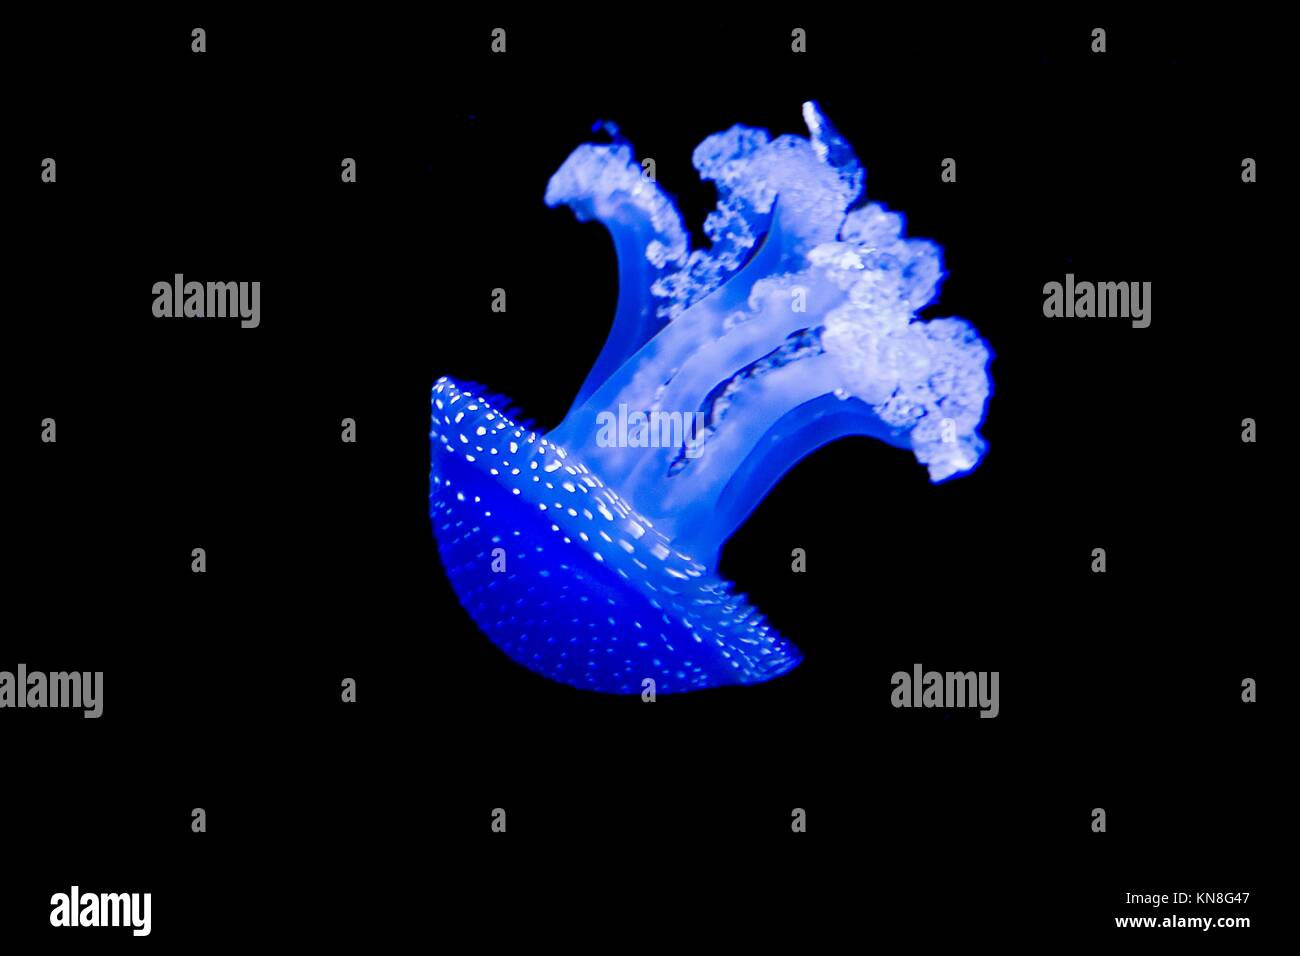 Beautiful white and blue jellyfish in the water on black and blue background in Lisbon aquarium, Portugal. - Stock Image